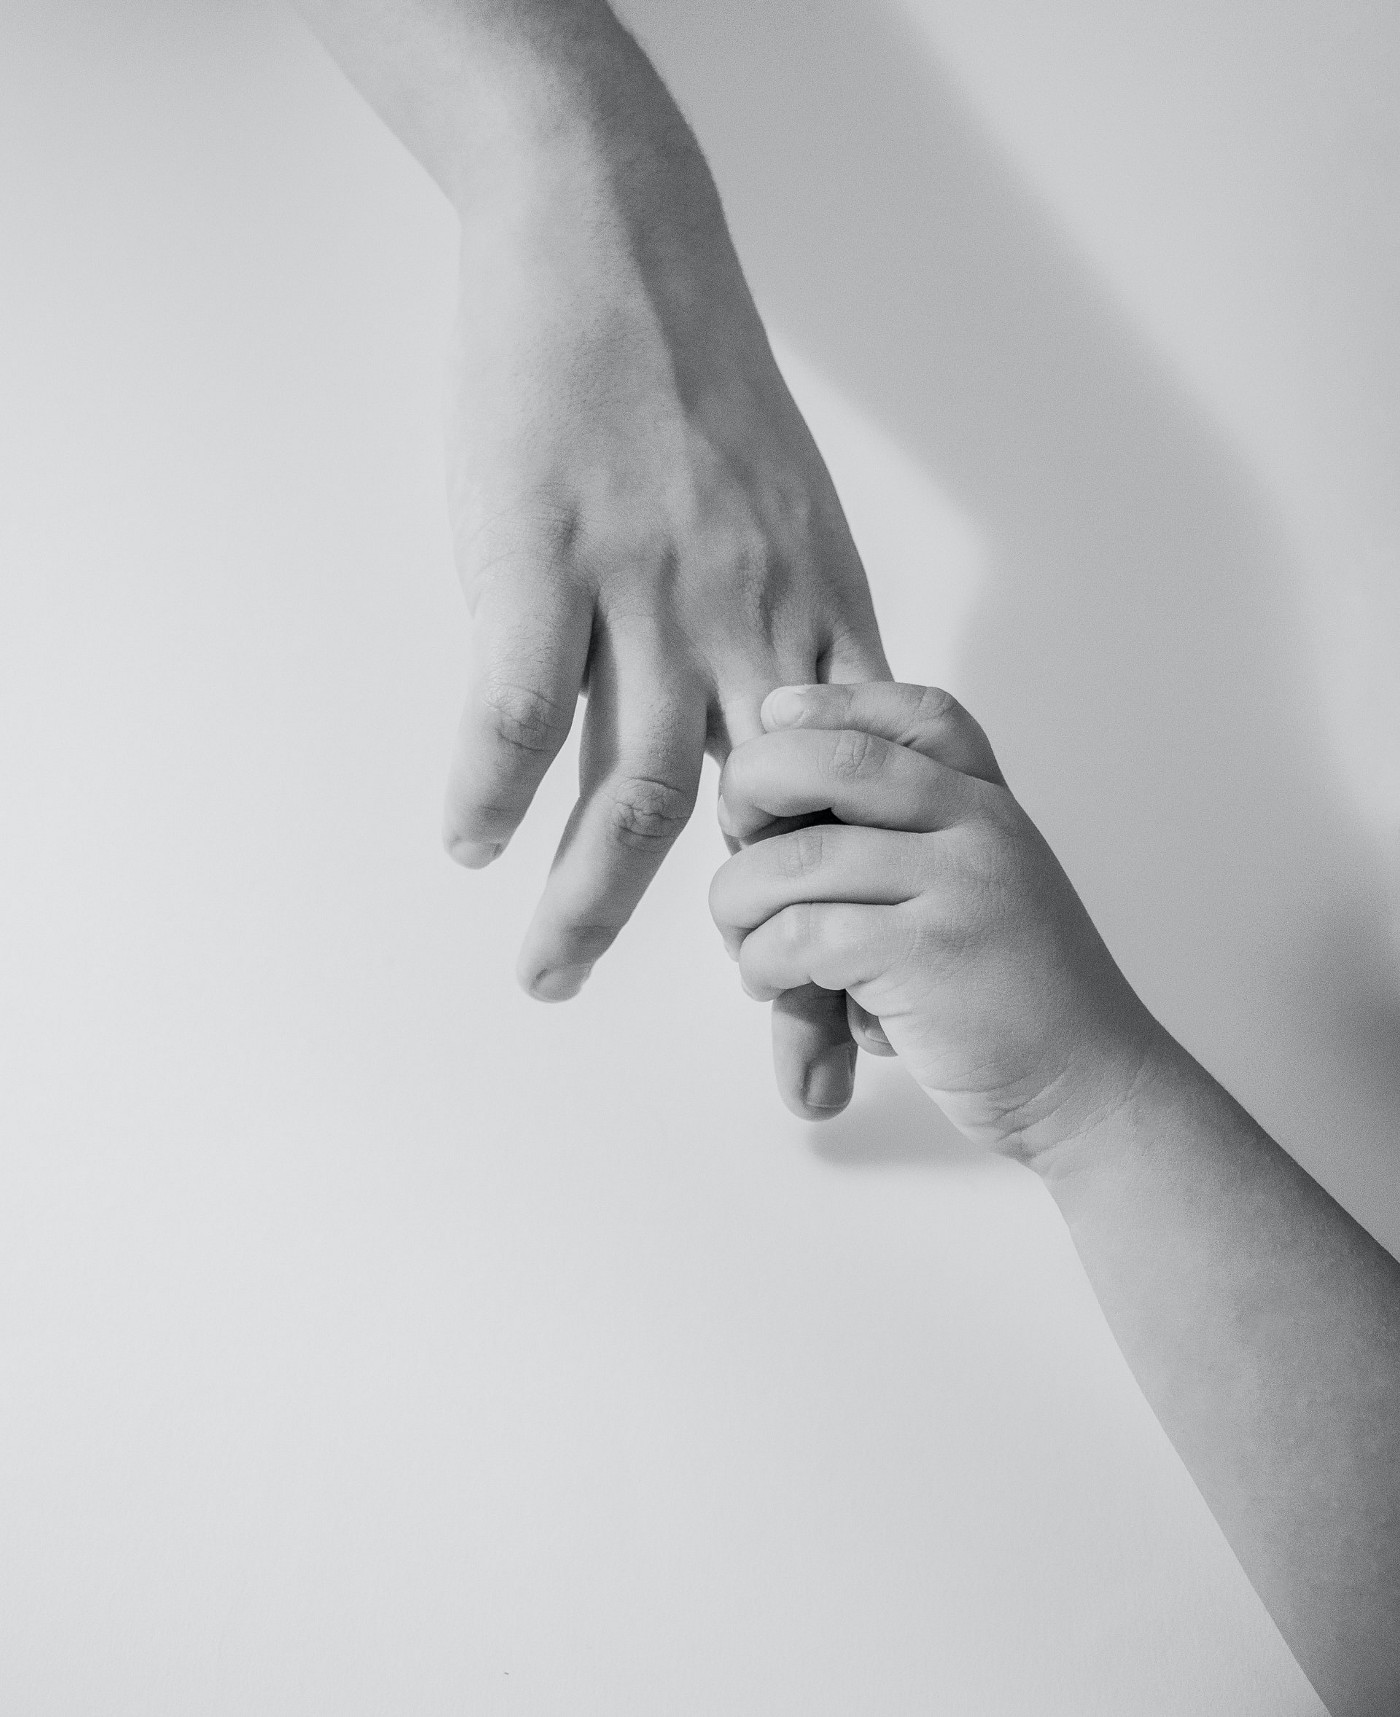 A child' hand holding the hand of an adult